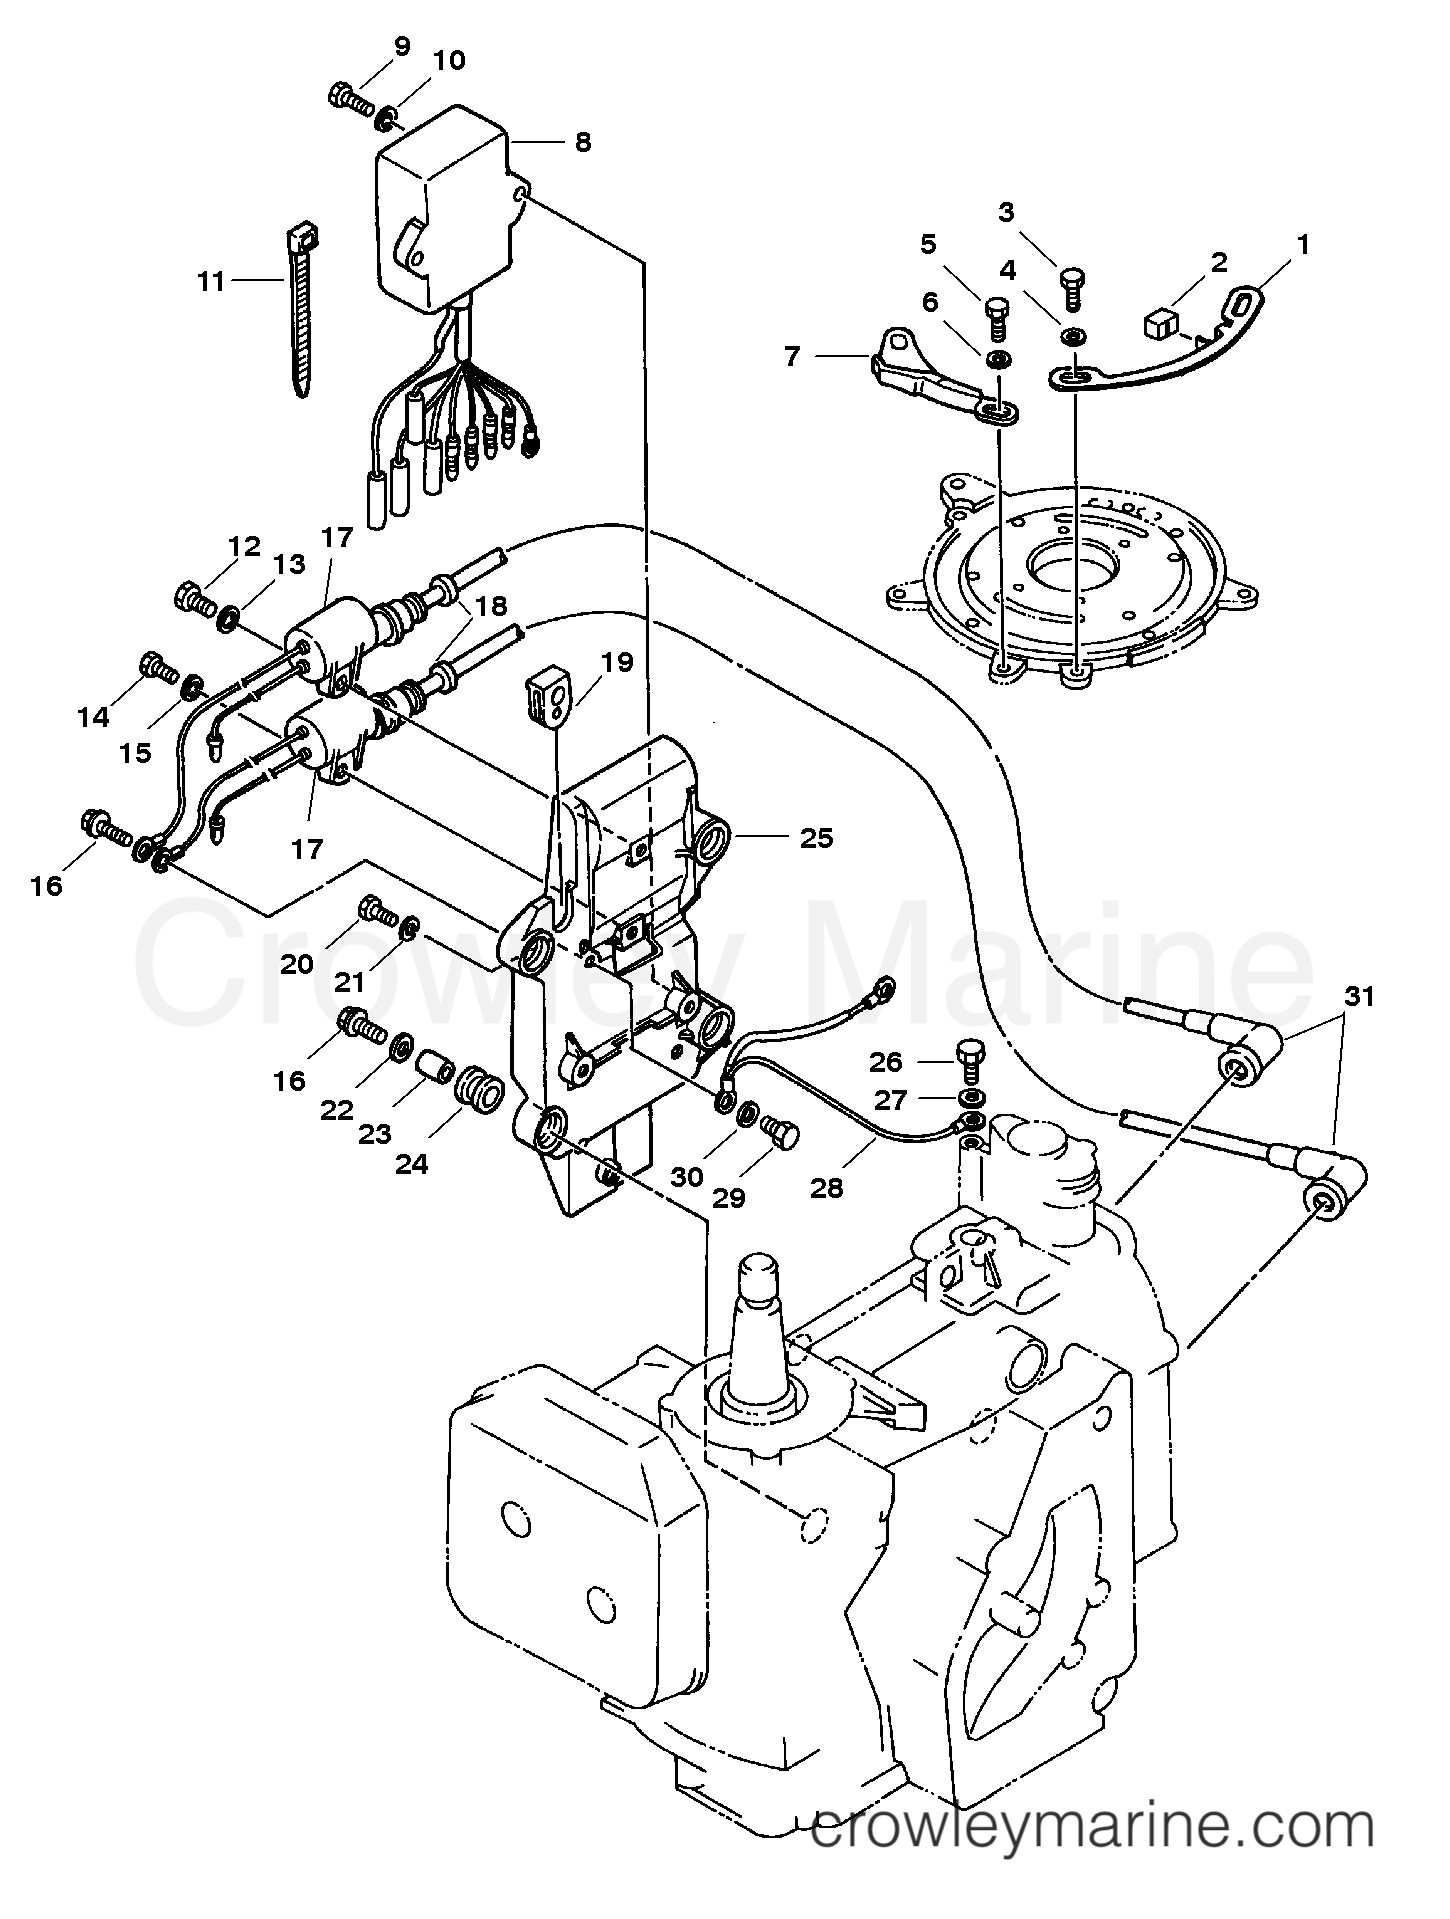 Mercury Outboard Ignition Diagram Electrical 1994 Mariner Outboard 25 [ml] Cw Of Mercury Outboard Ignition Diagram